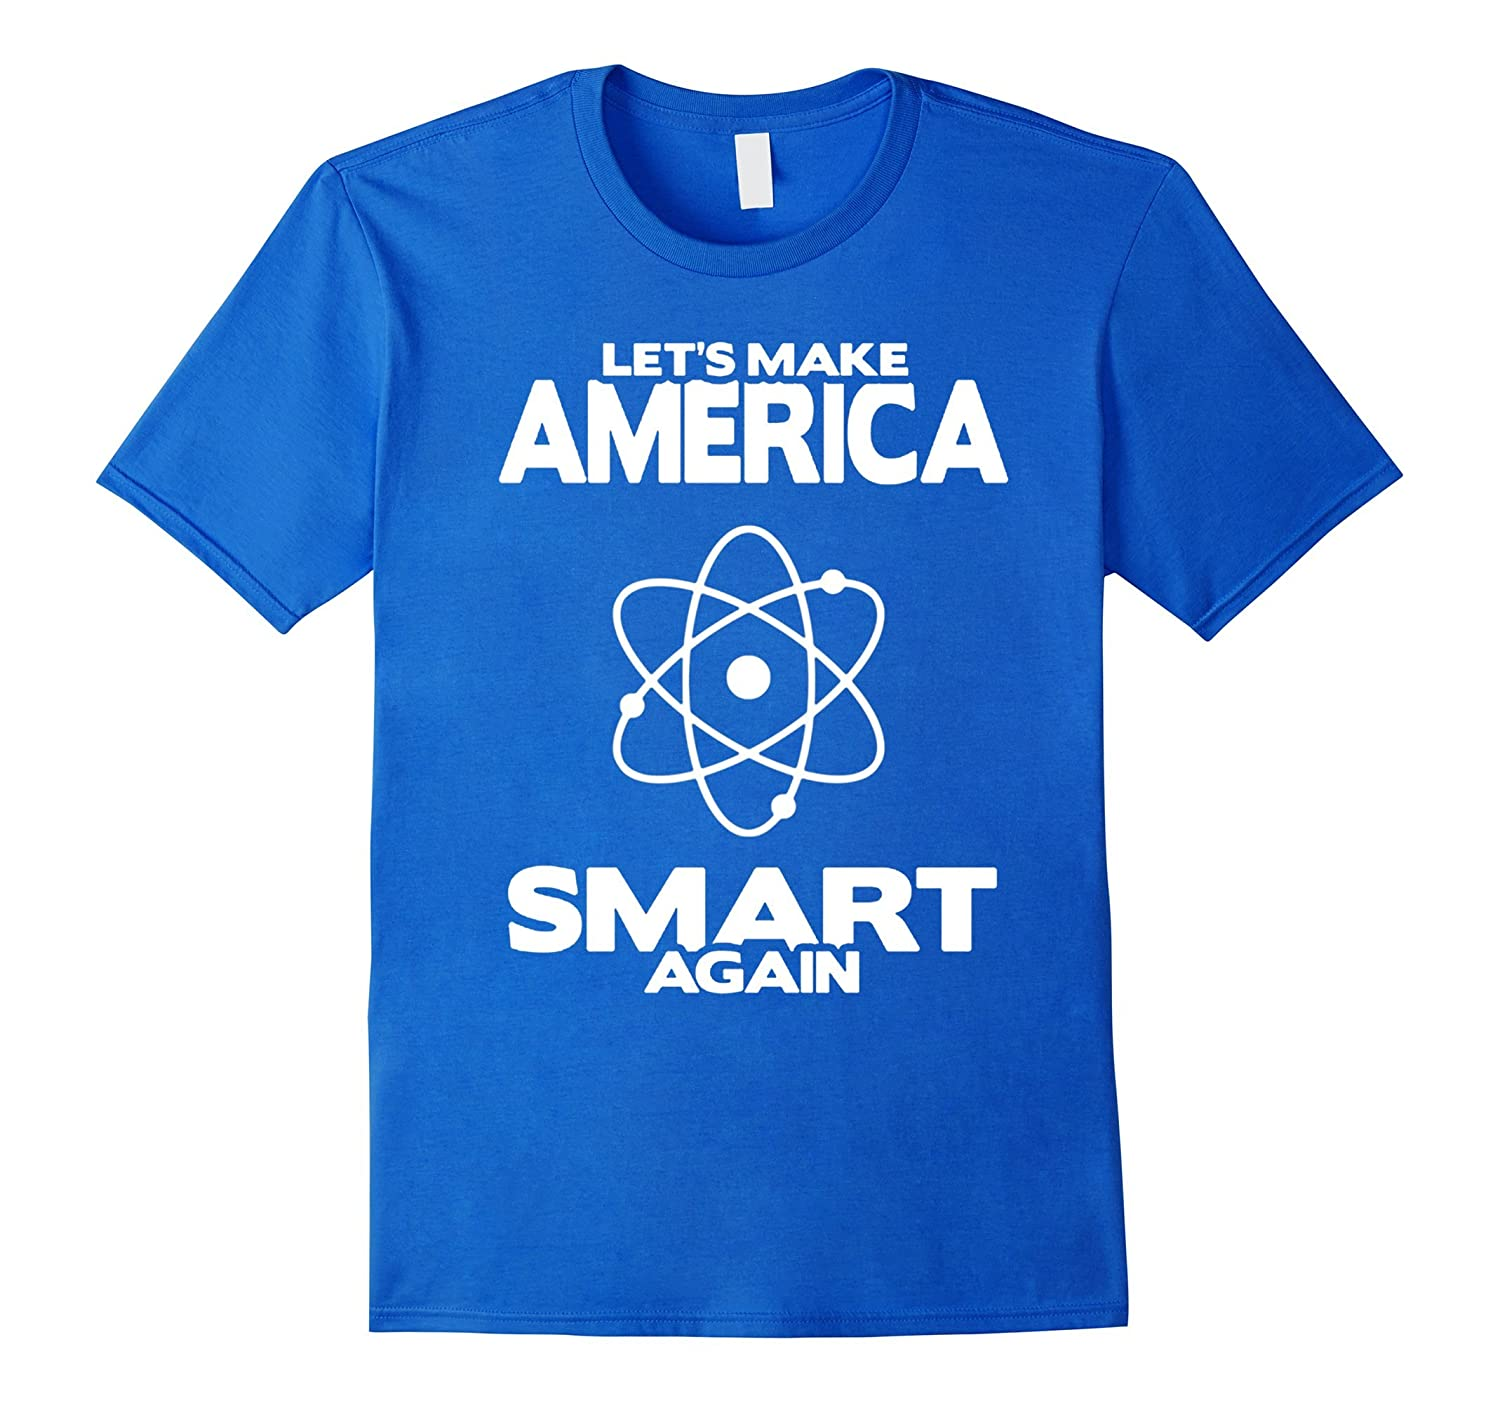 Make america smart again with science t shirt goatstee for Make a photo t shirt